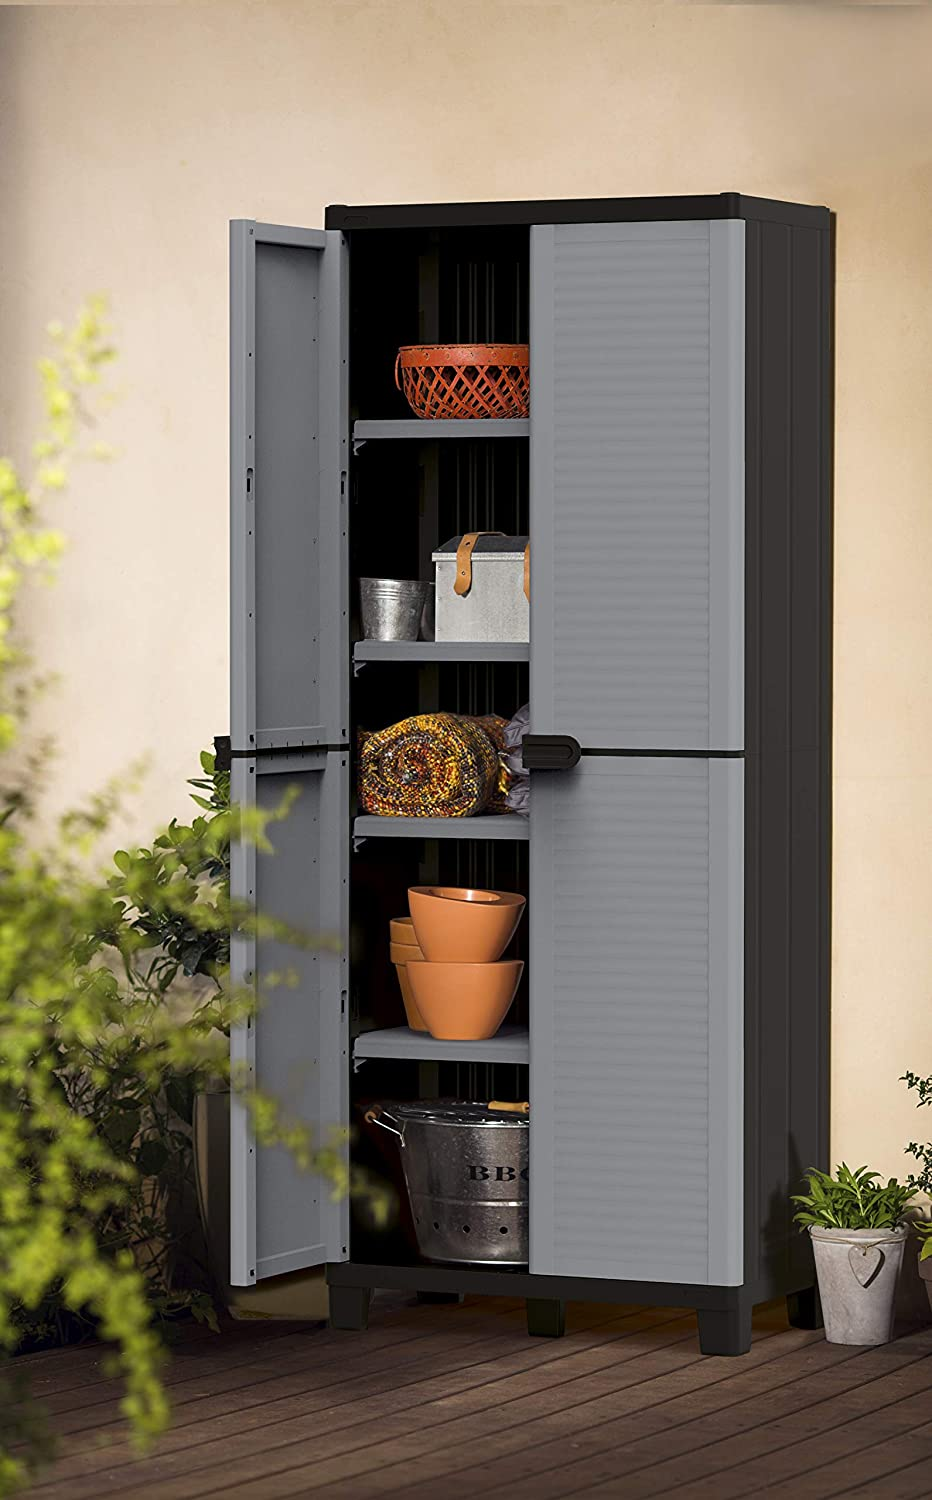 KETER Storage Cabinet with Doors and Shelves - Perfect for Garage and Basement Organization, Grey: Furniture & Decor